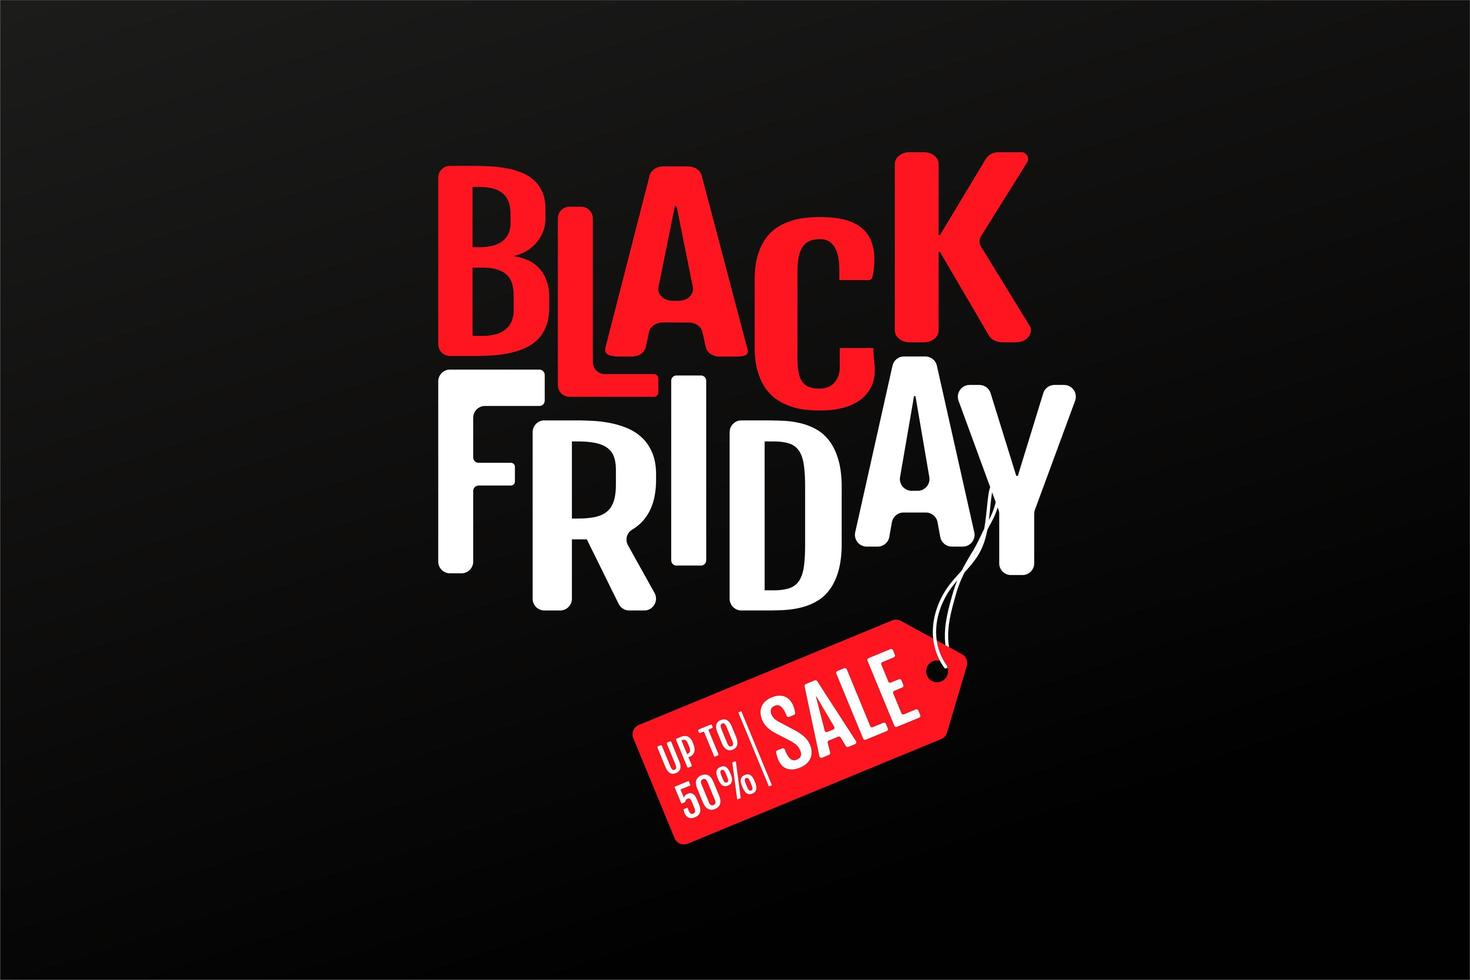 Black Friday text and product discount price tags vector